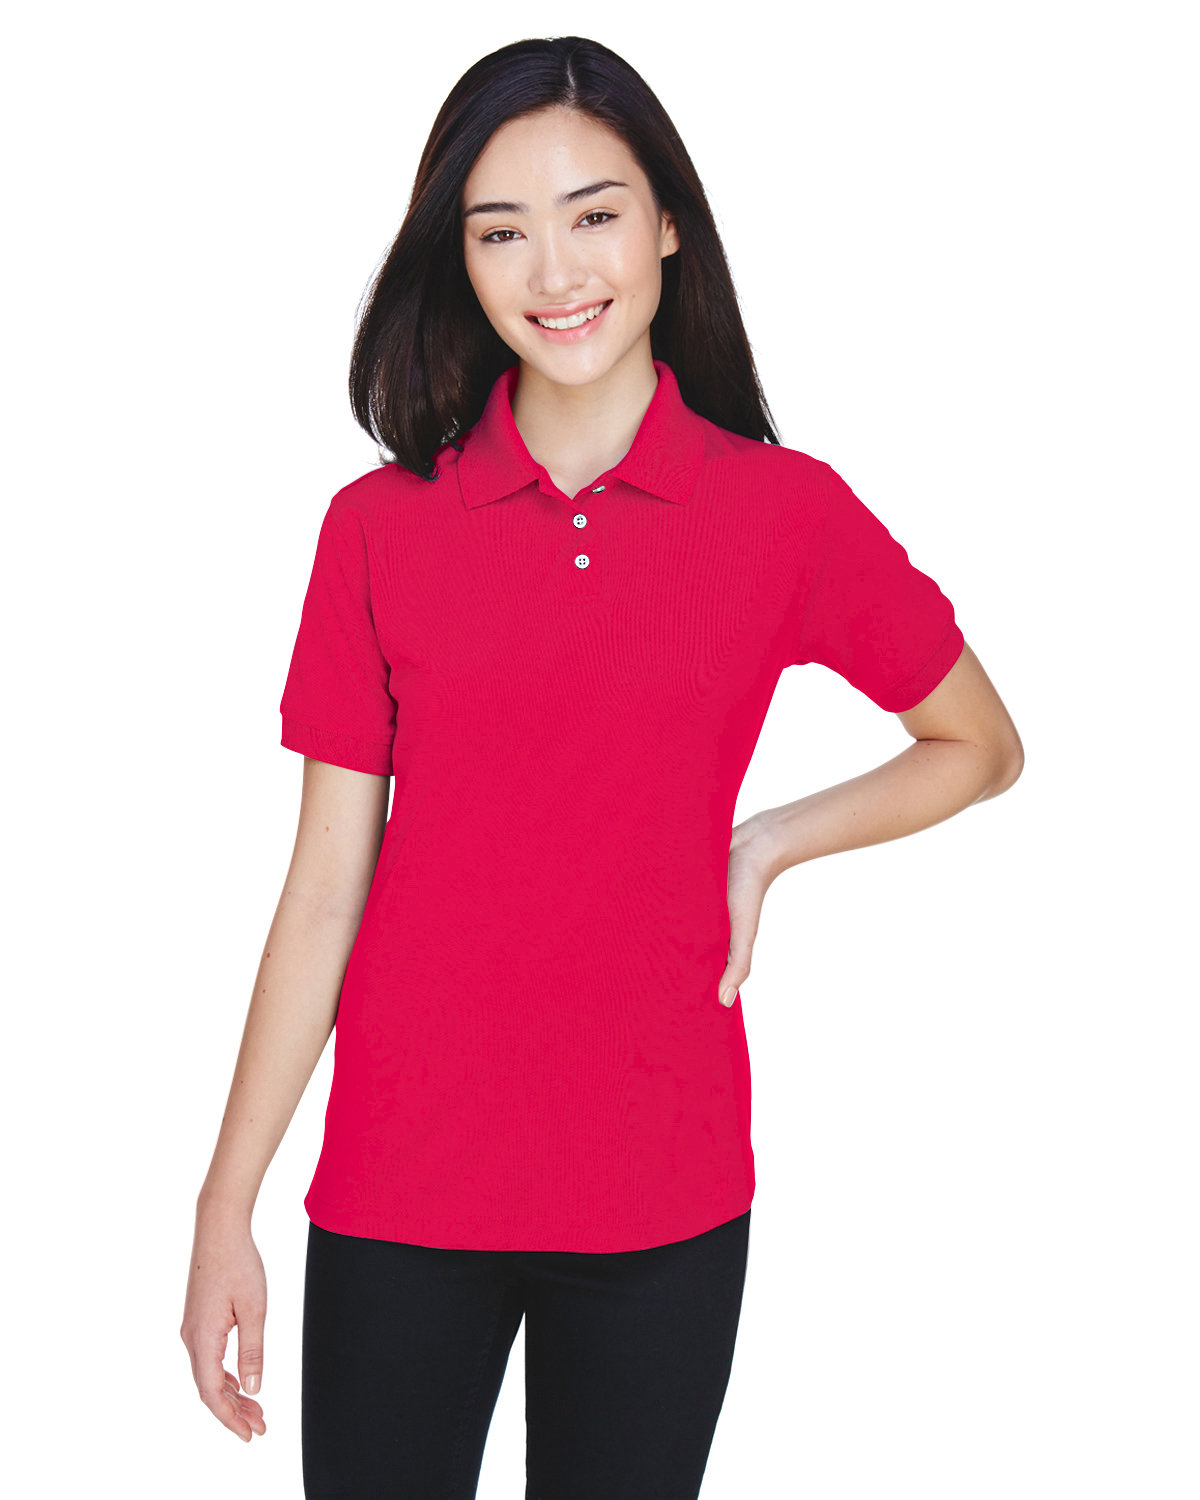 UltraClub Ladies' Platinum Performance Piqué Polo with TempControl Technology RED